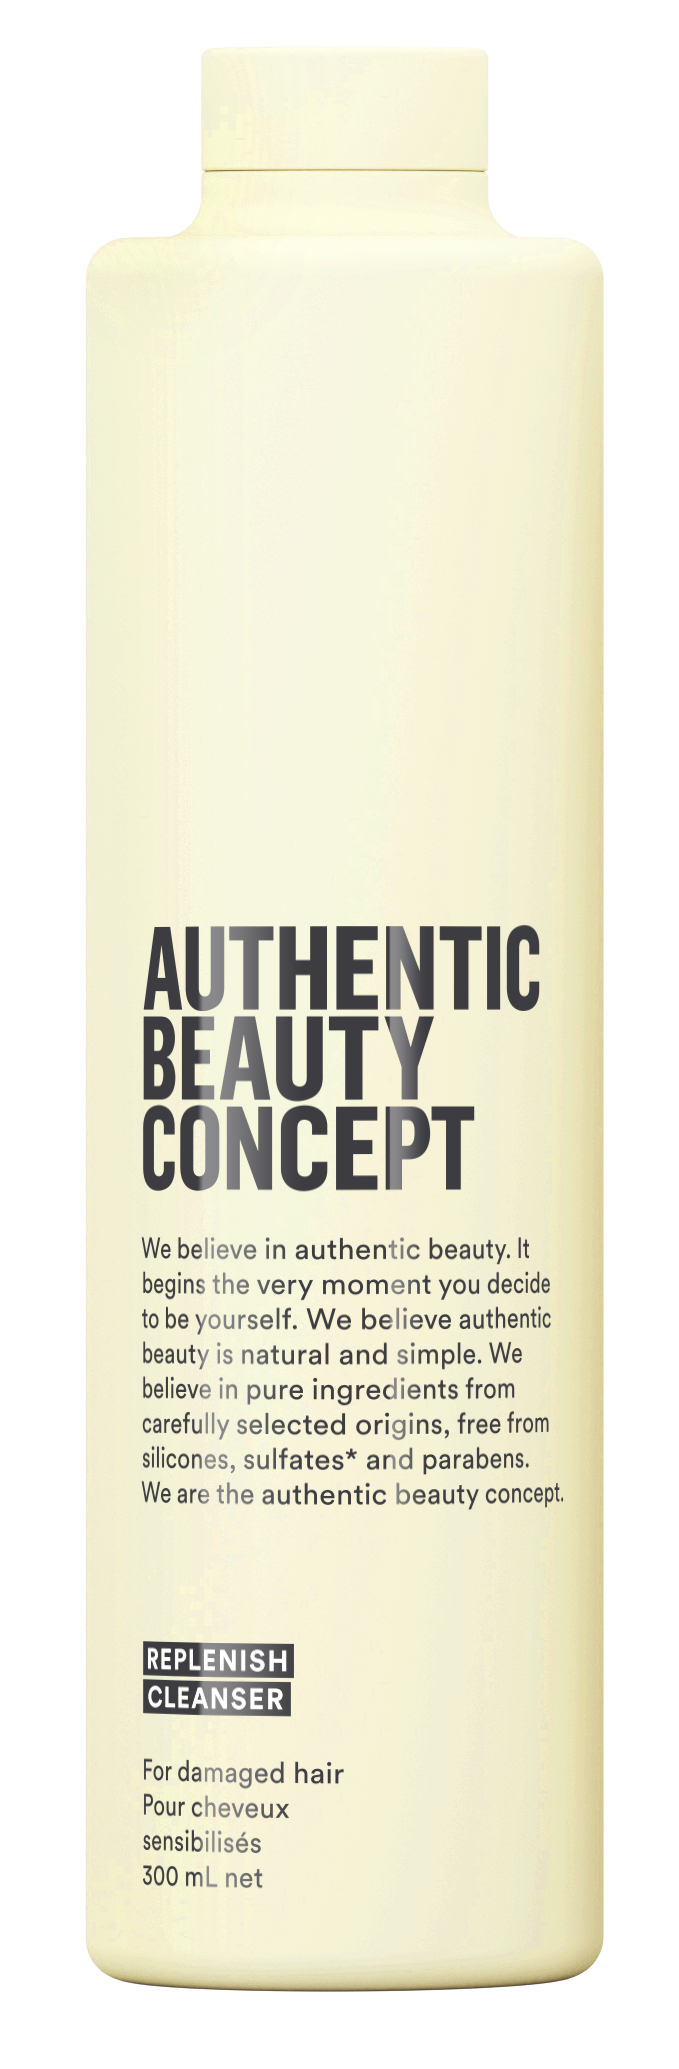 Eds Hair - Authentic Beauty Concept - Replenish Cleanser 300ml